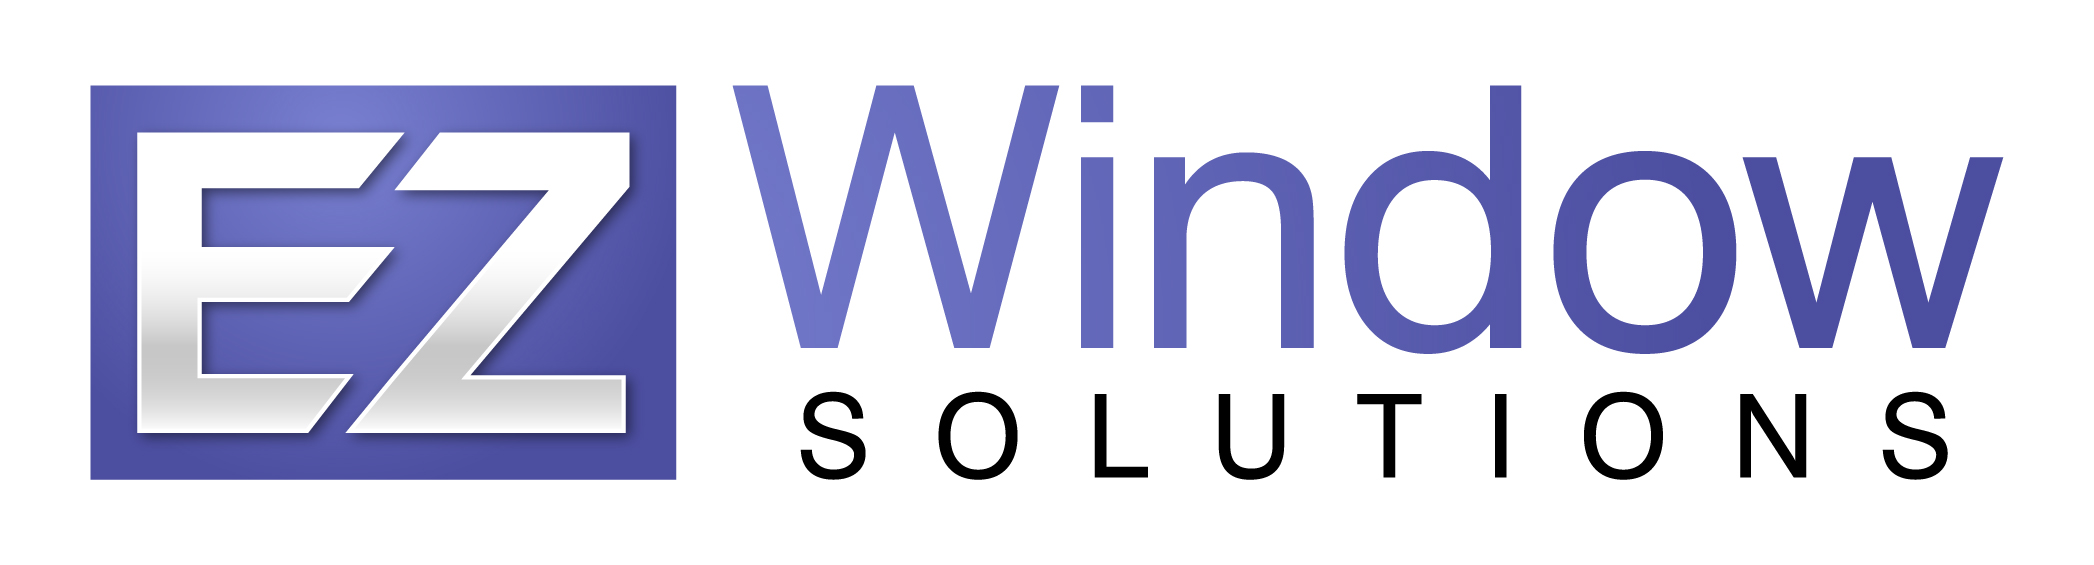 EZ Window Solutions | Replacement Windows and Doors